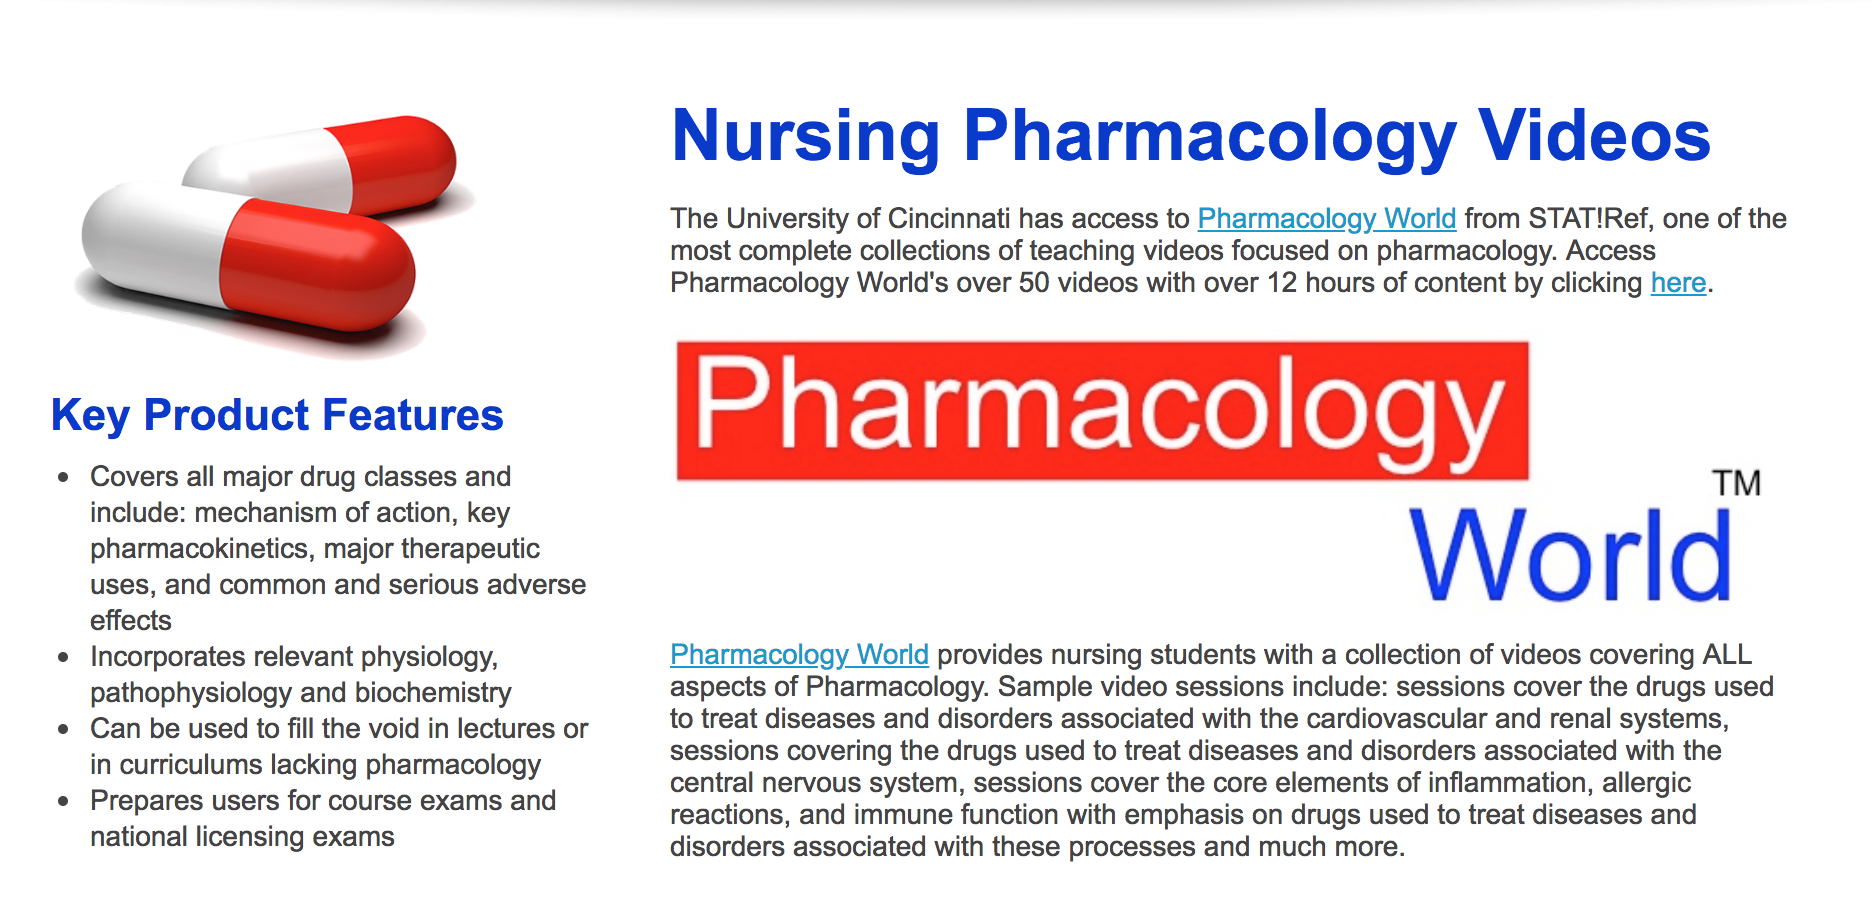 Pharmacology World for Nurses